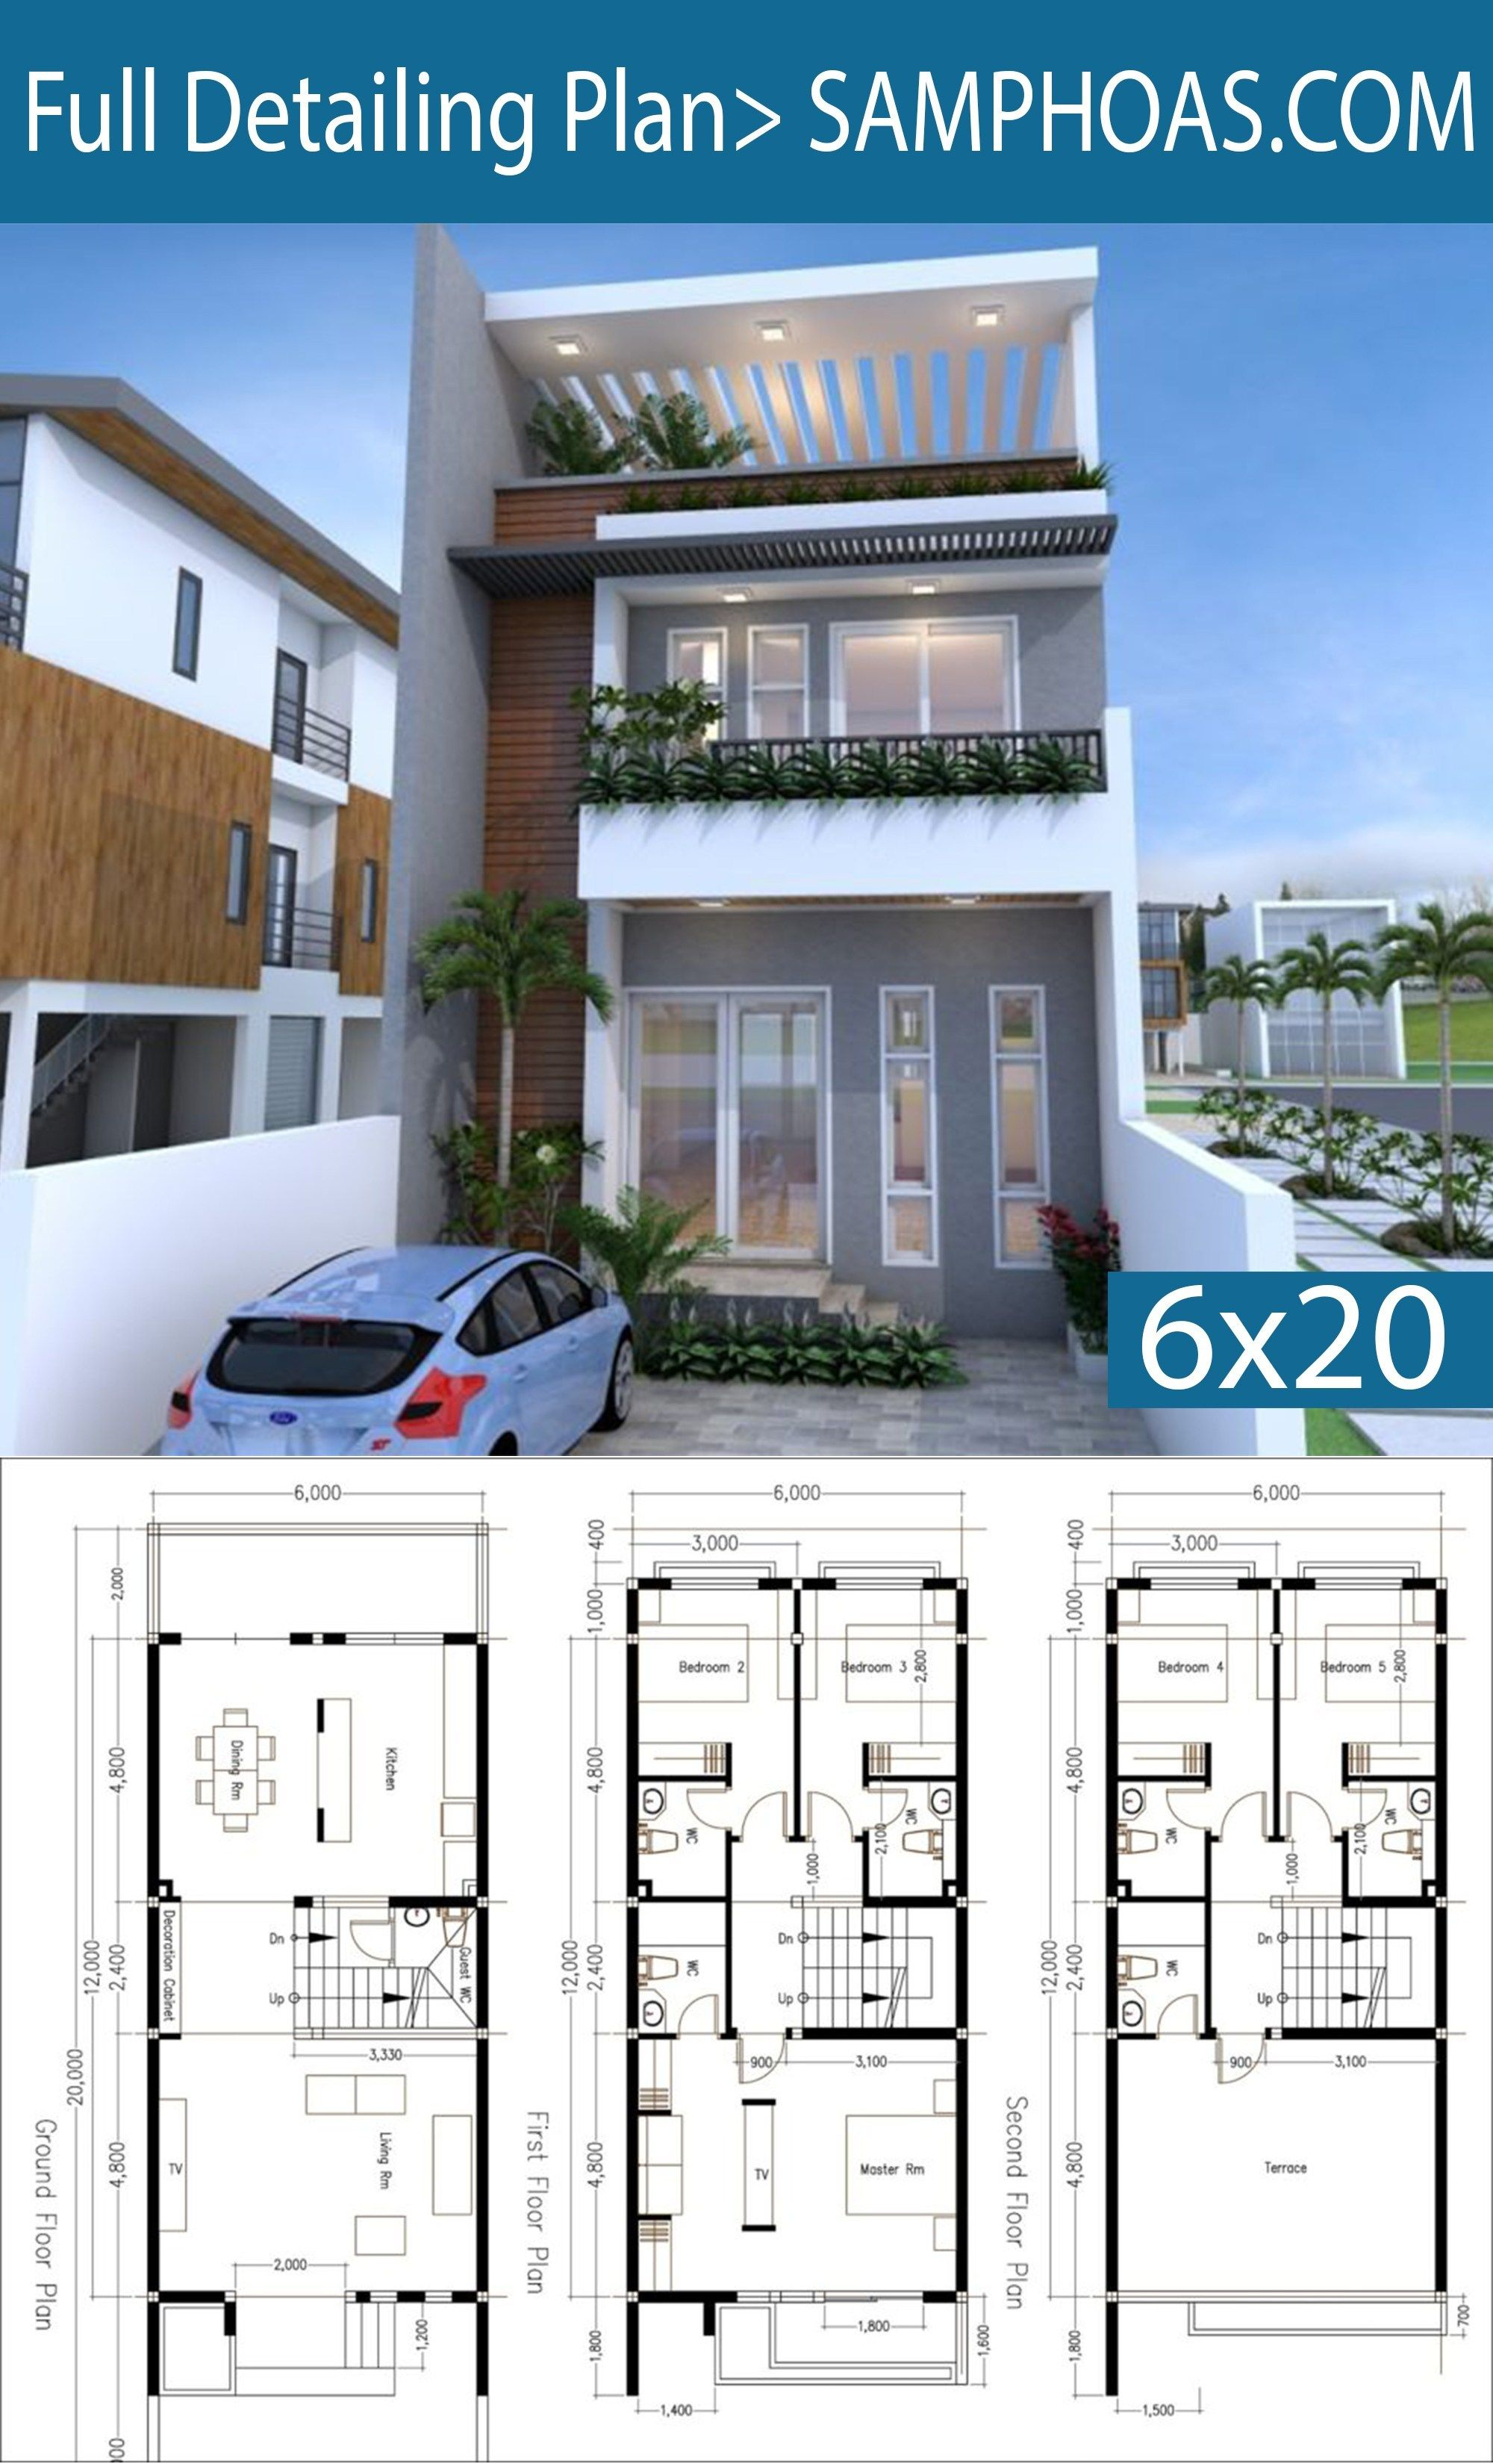 5 Bedrooms Modern Home Plan 6x12m This Villa Is Modeling By Sam Architect With 3 Stories Level It S Has Narrow House Plans Model House Plan Duplex House Plans